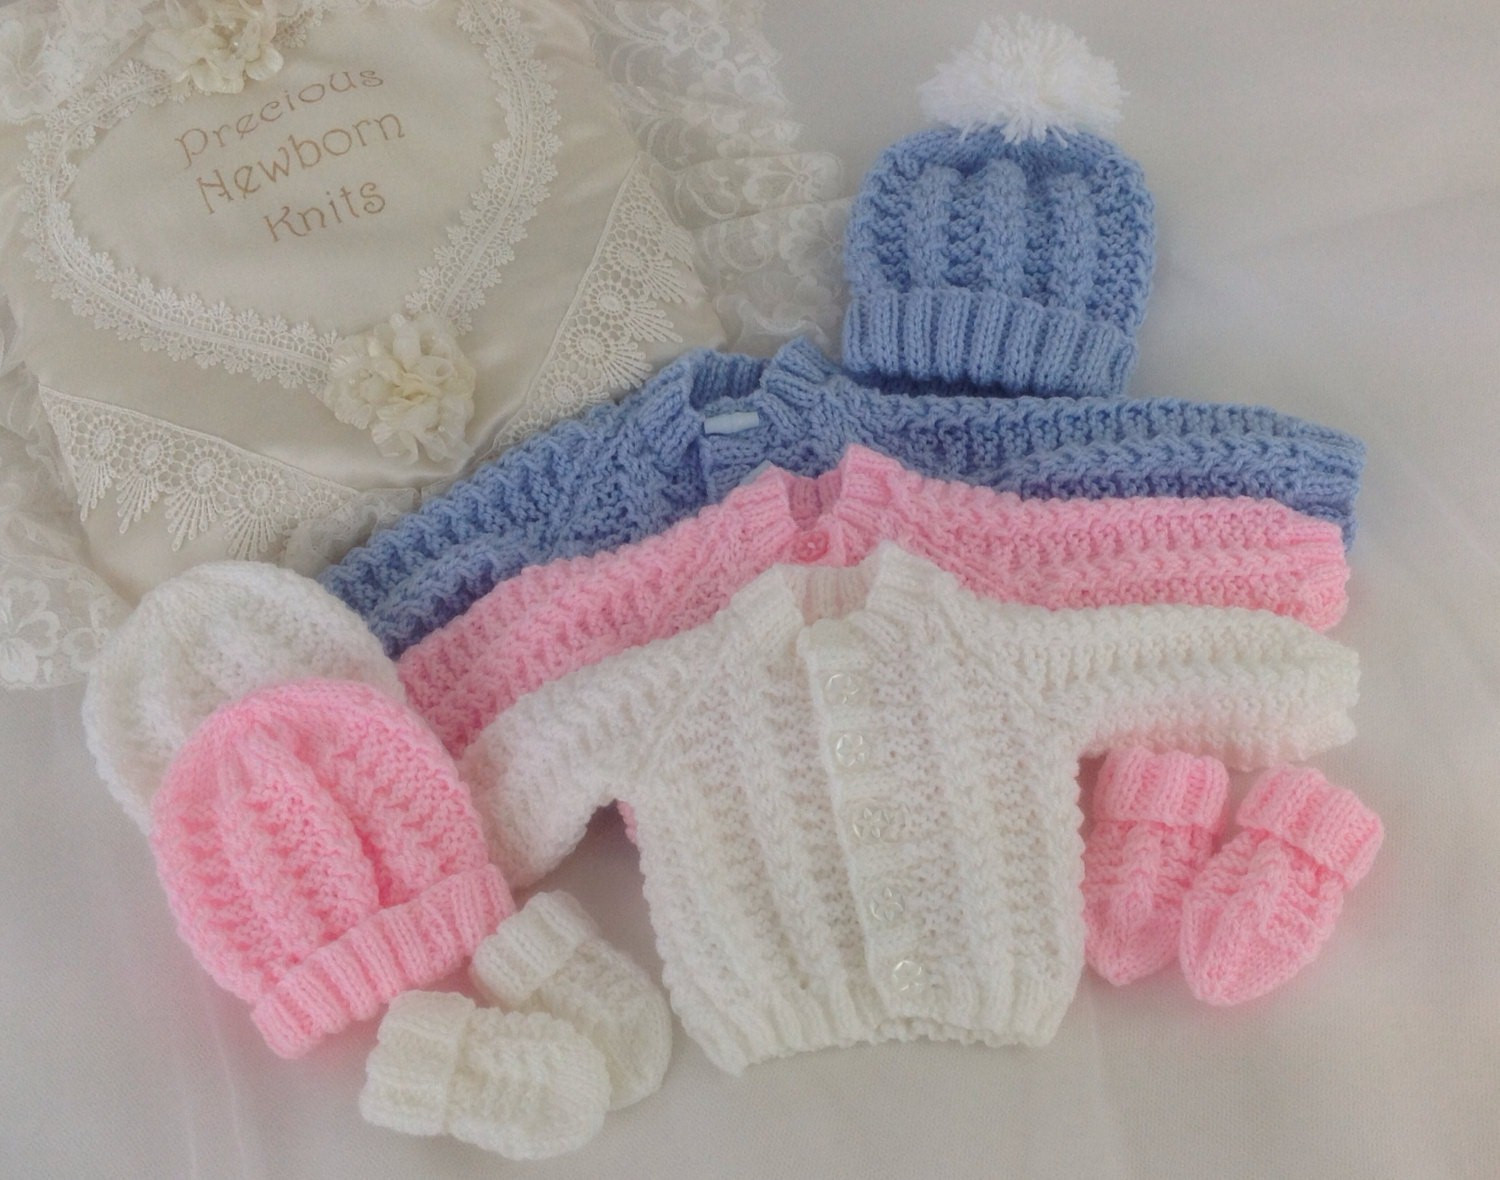 Unique Baby Knitting Patterns Free S Free Crochet Patterns for Newborns Of Unique 40 Photos Free Crochet Patterns for Newborns